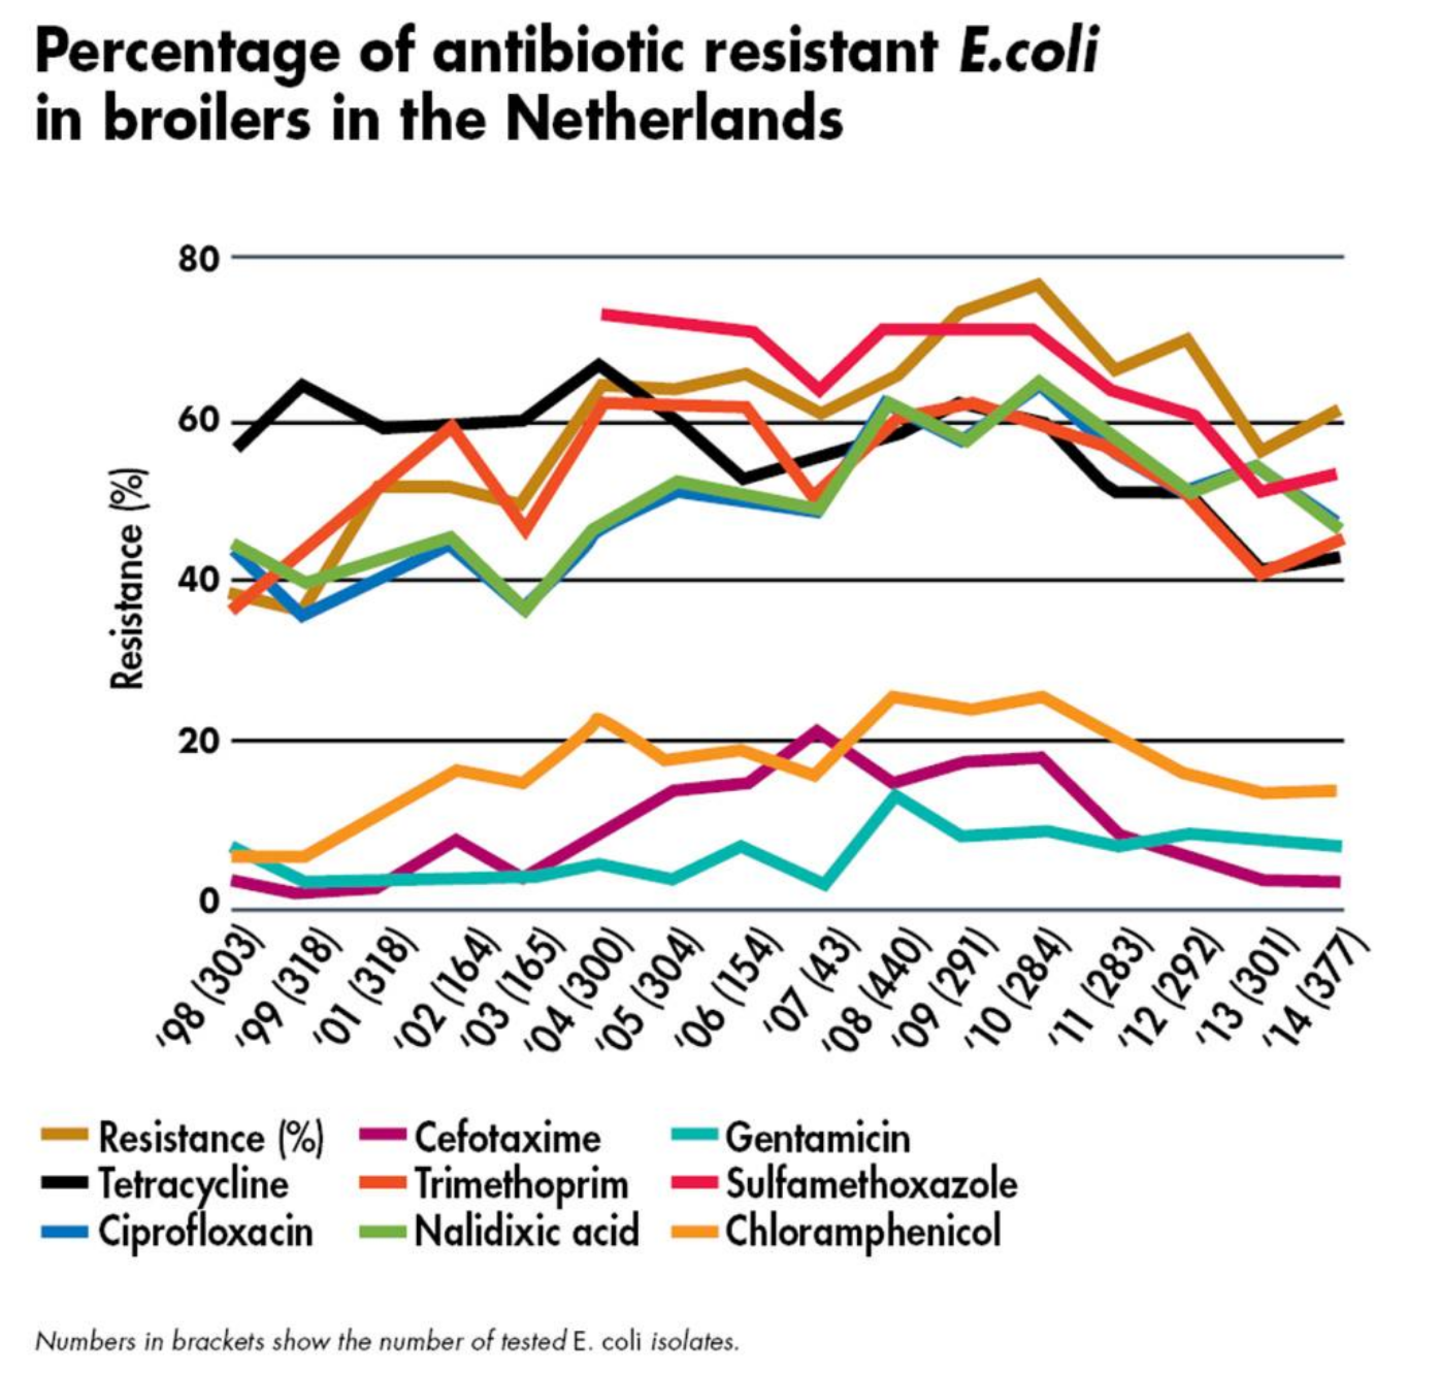 Antibiotic Resistance in Poultry